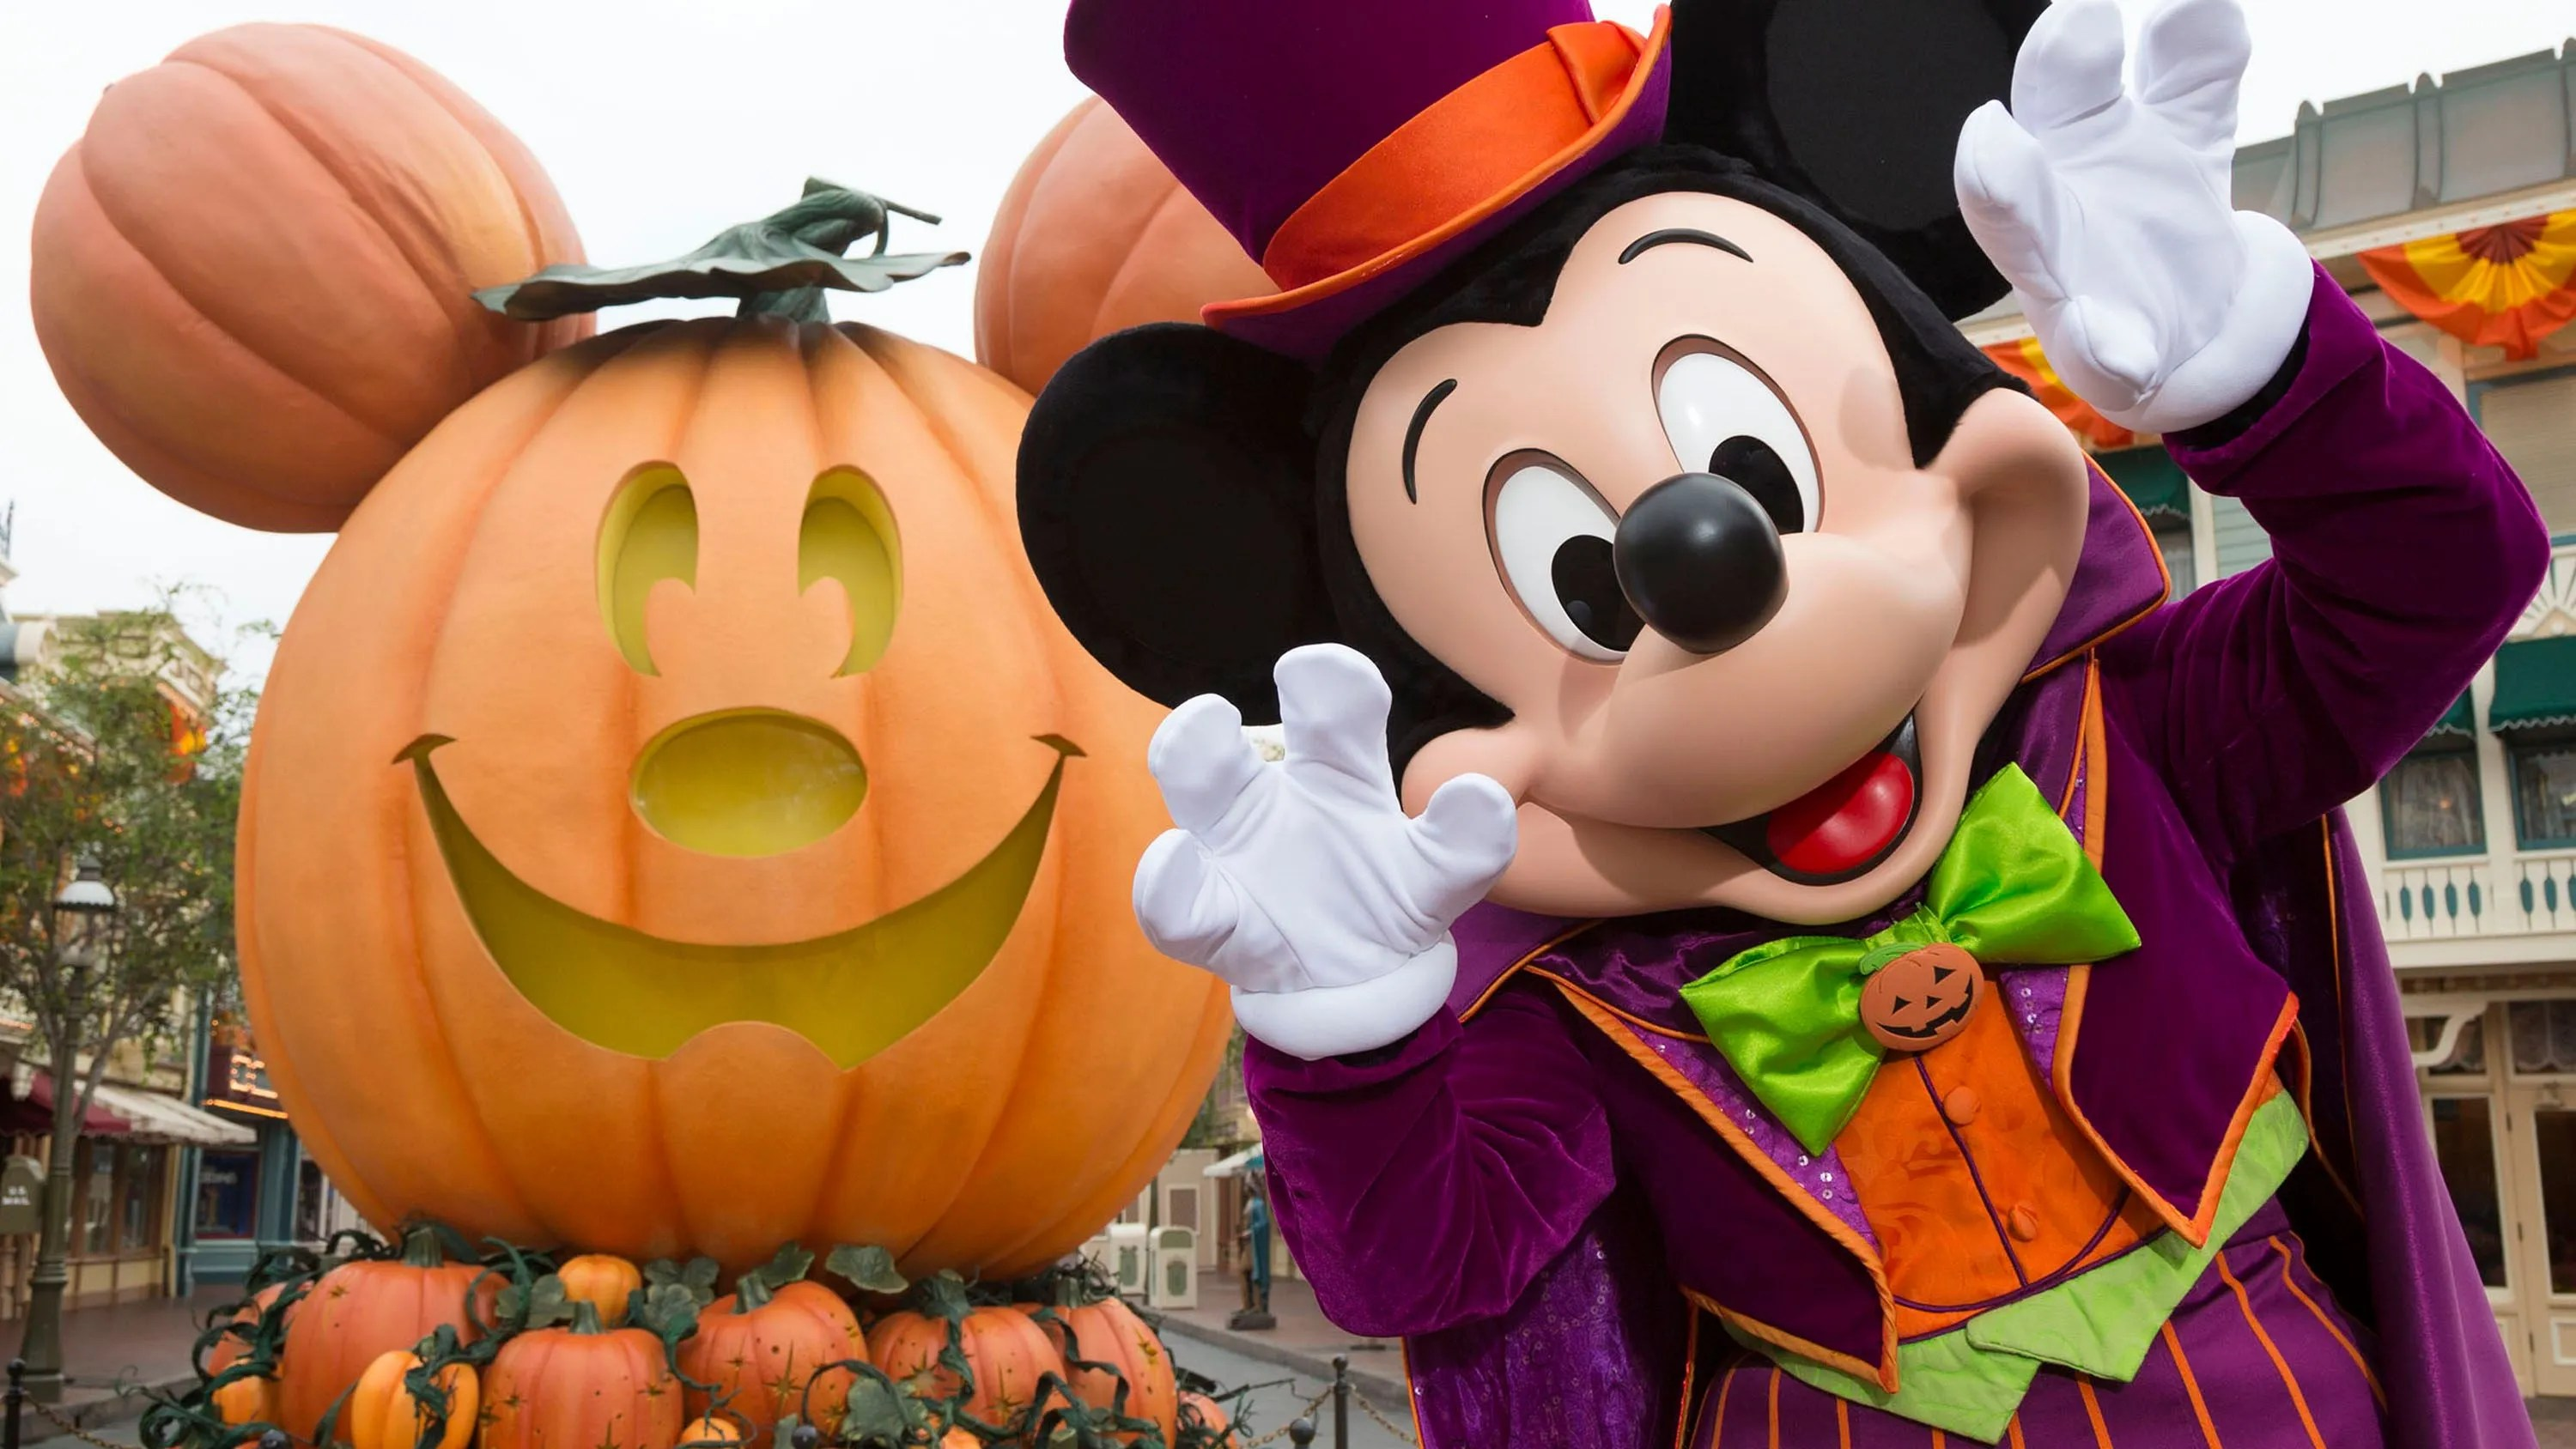 The event officially starts at 7pm, but you can enter magic kingdom before then (around 4pm). Tickets For Mickey S Halloween Party 2018 At Disneyland Go On Sale 6 5